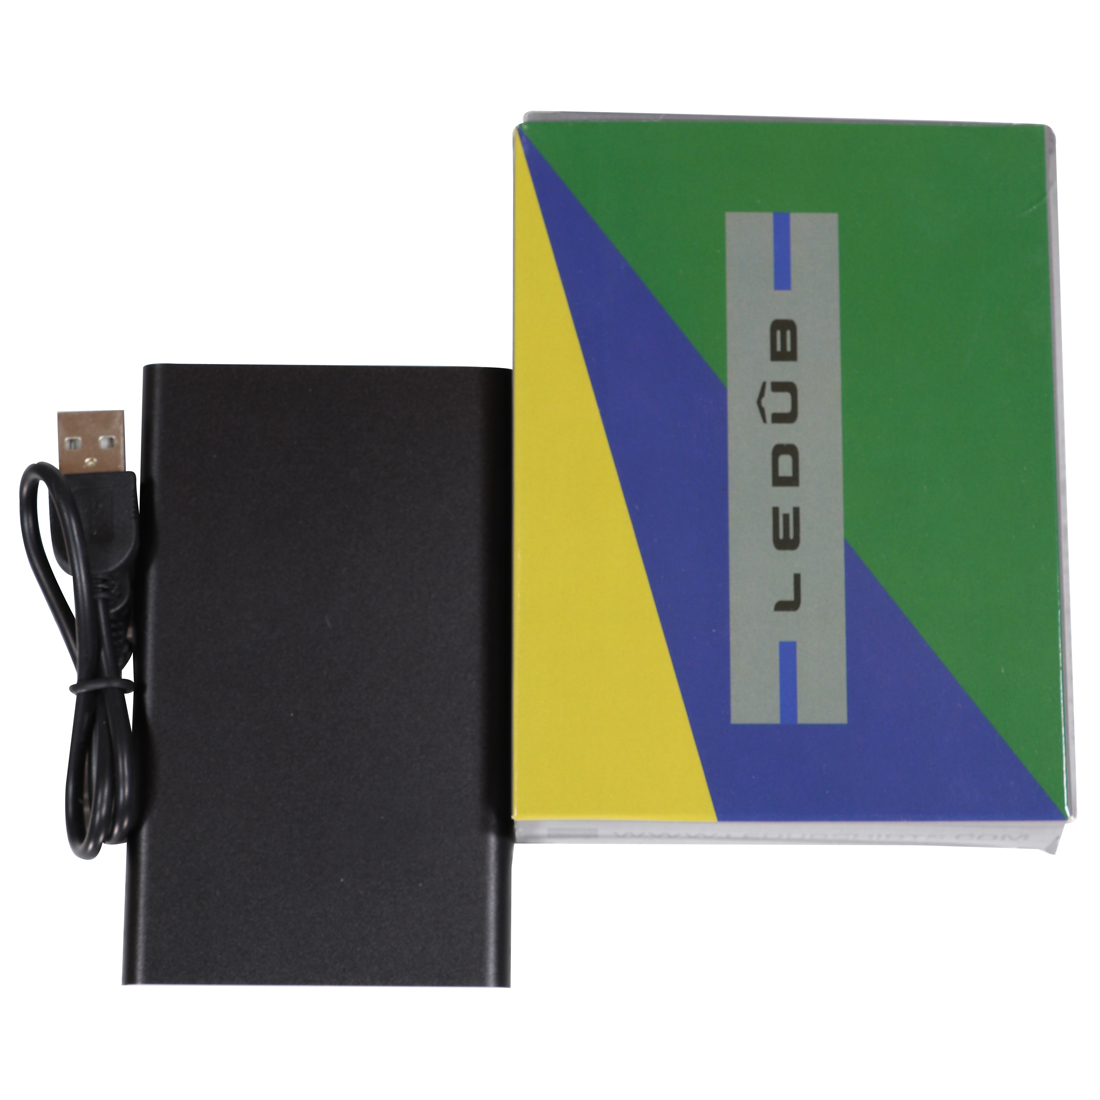 Image of Ledub accessoire powerbank-ledub in het Multicolor